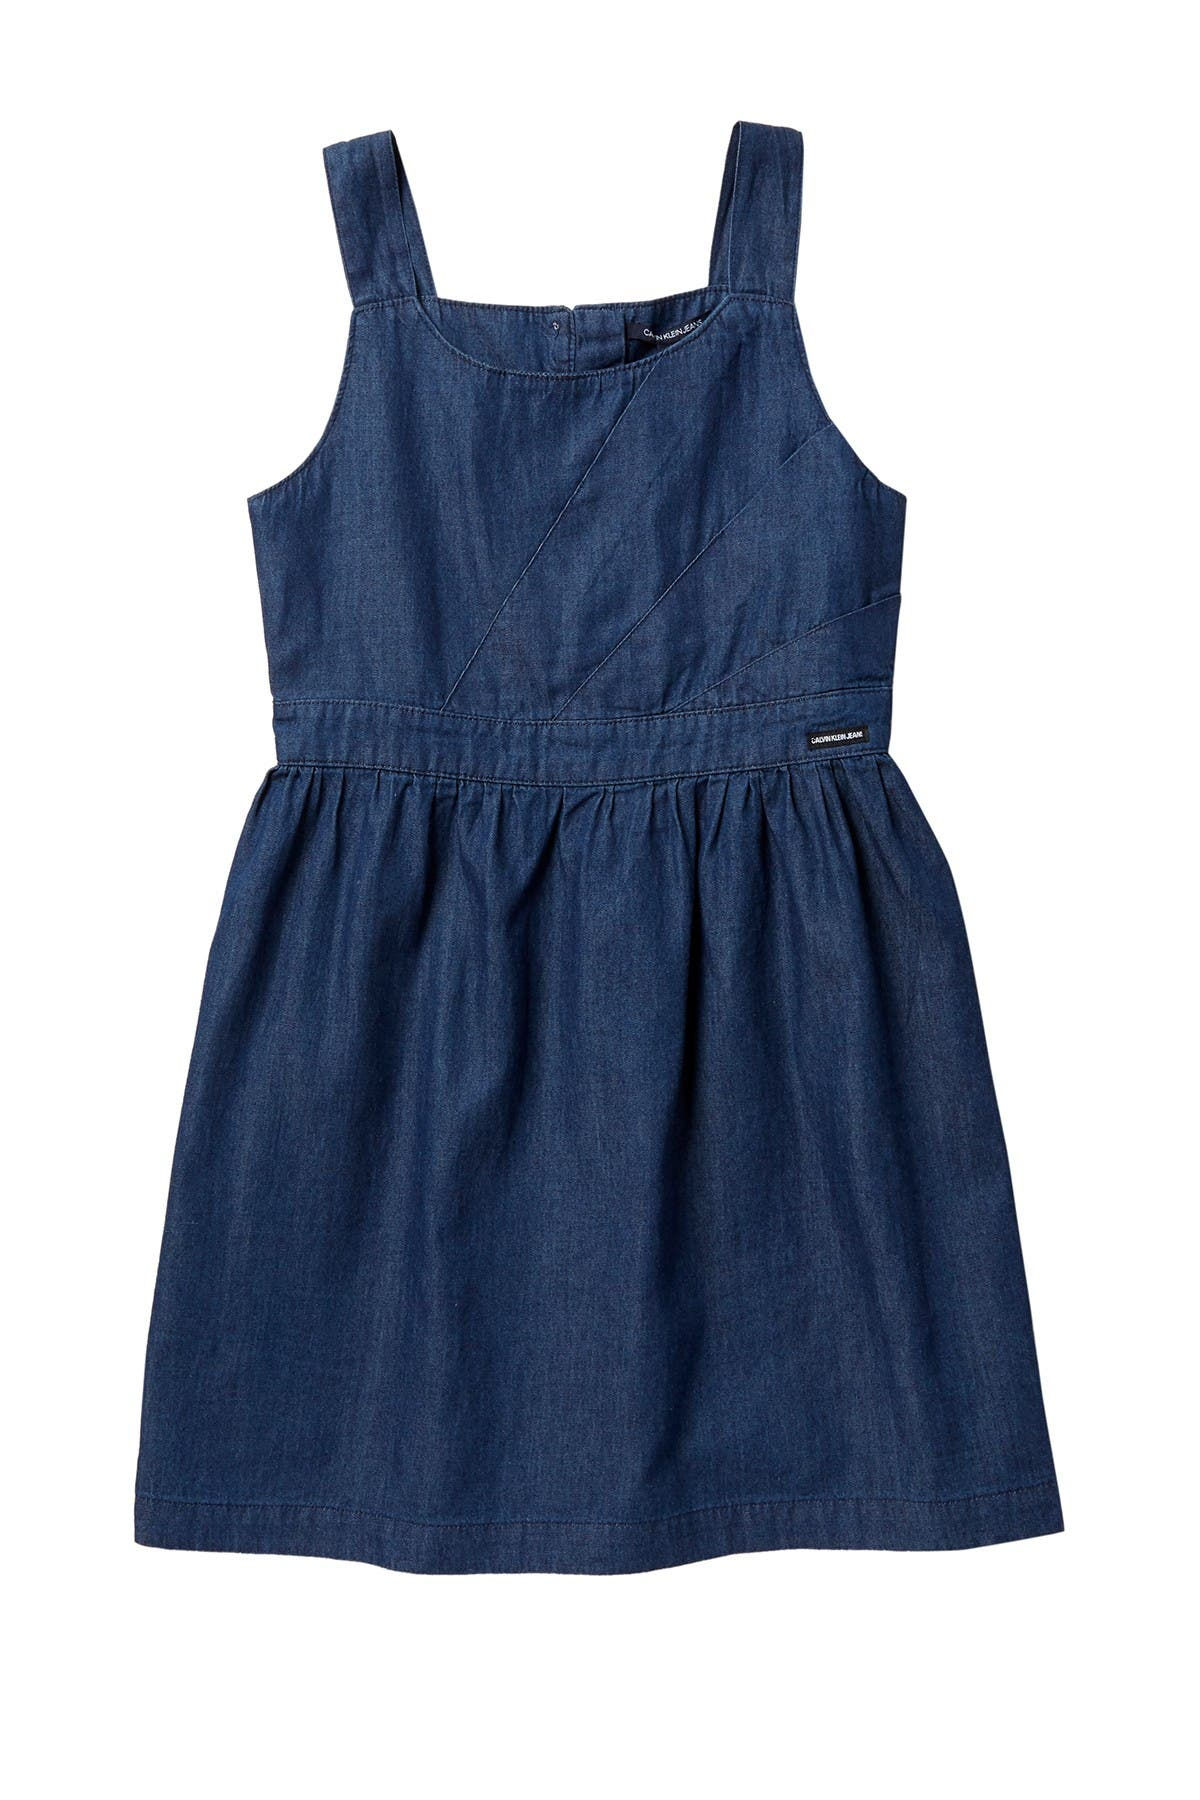 Image of Calvin Klein Origami Chambray Dress